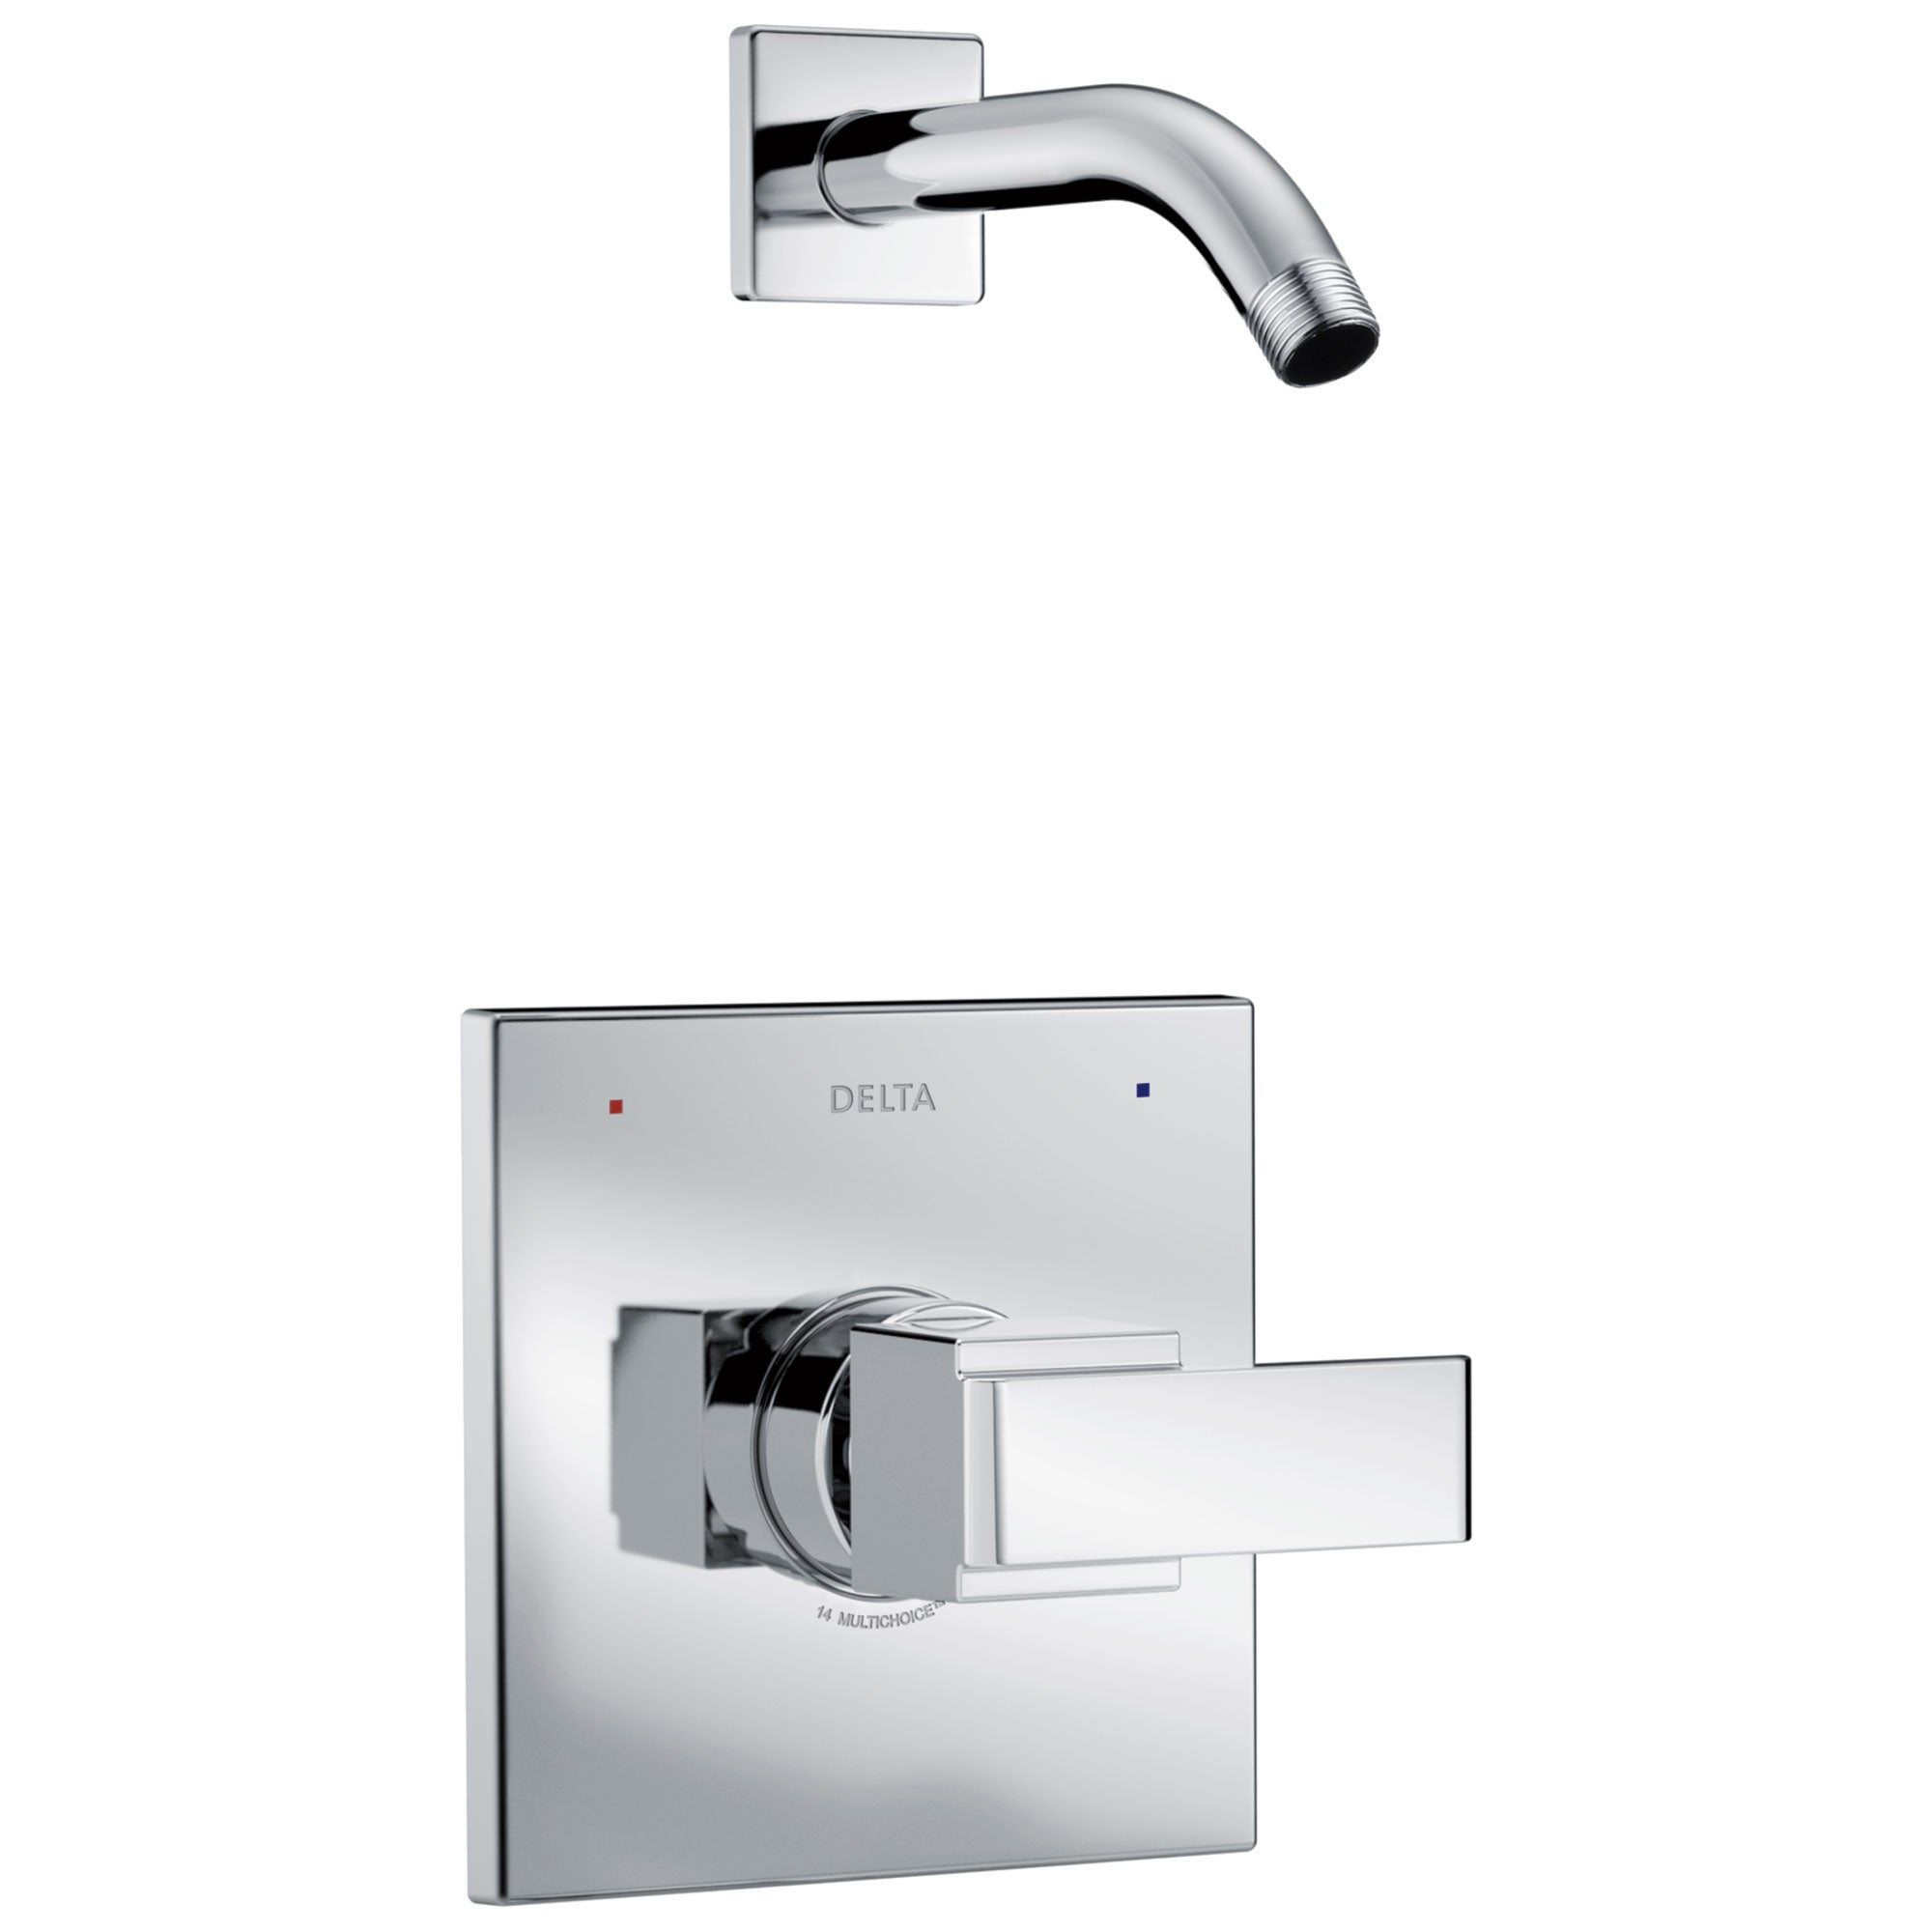 Delta Ara 1-Handle Shower Faucet Trim Kit in Chrome with Less Showerhead Includes Rough-in Valve with Stops D2561V